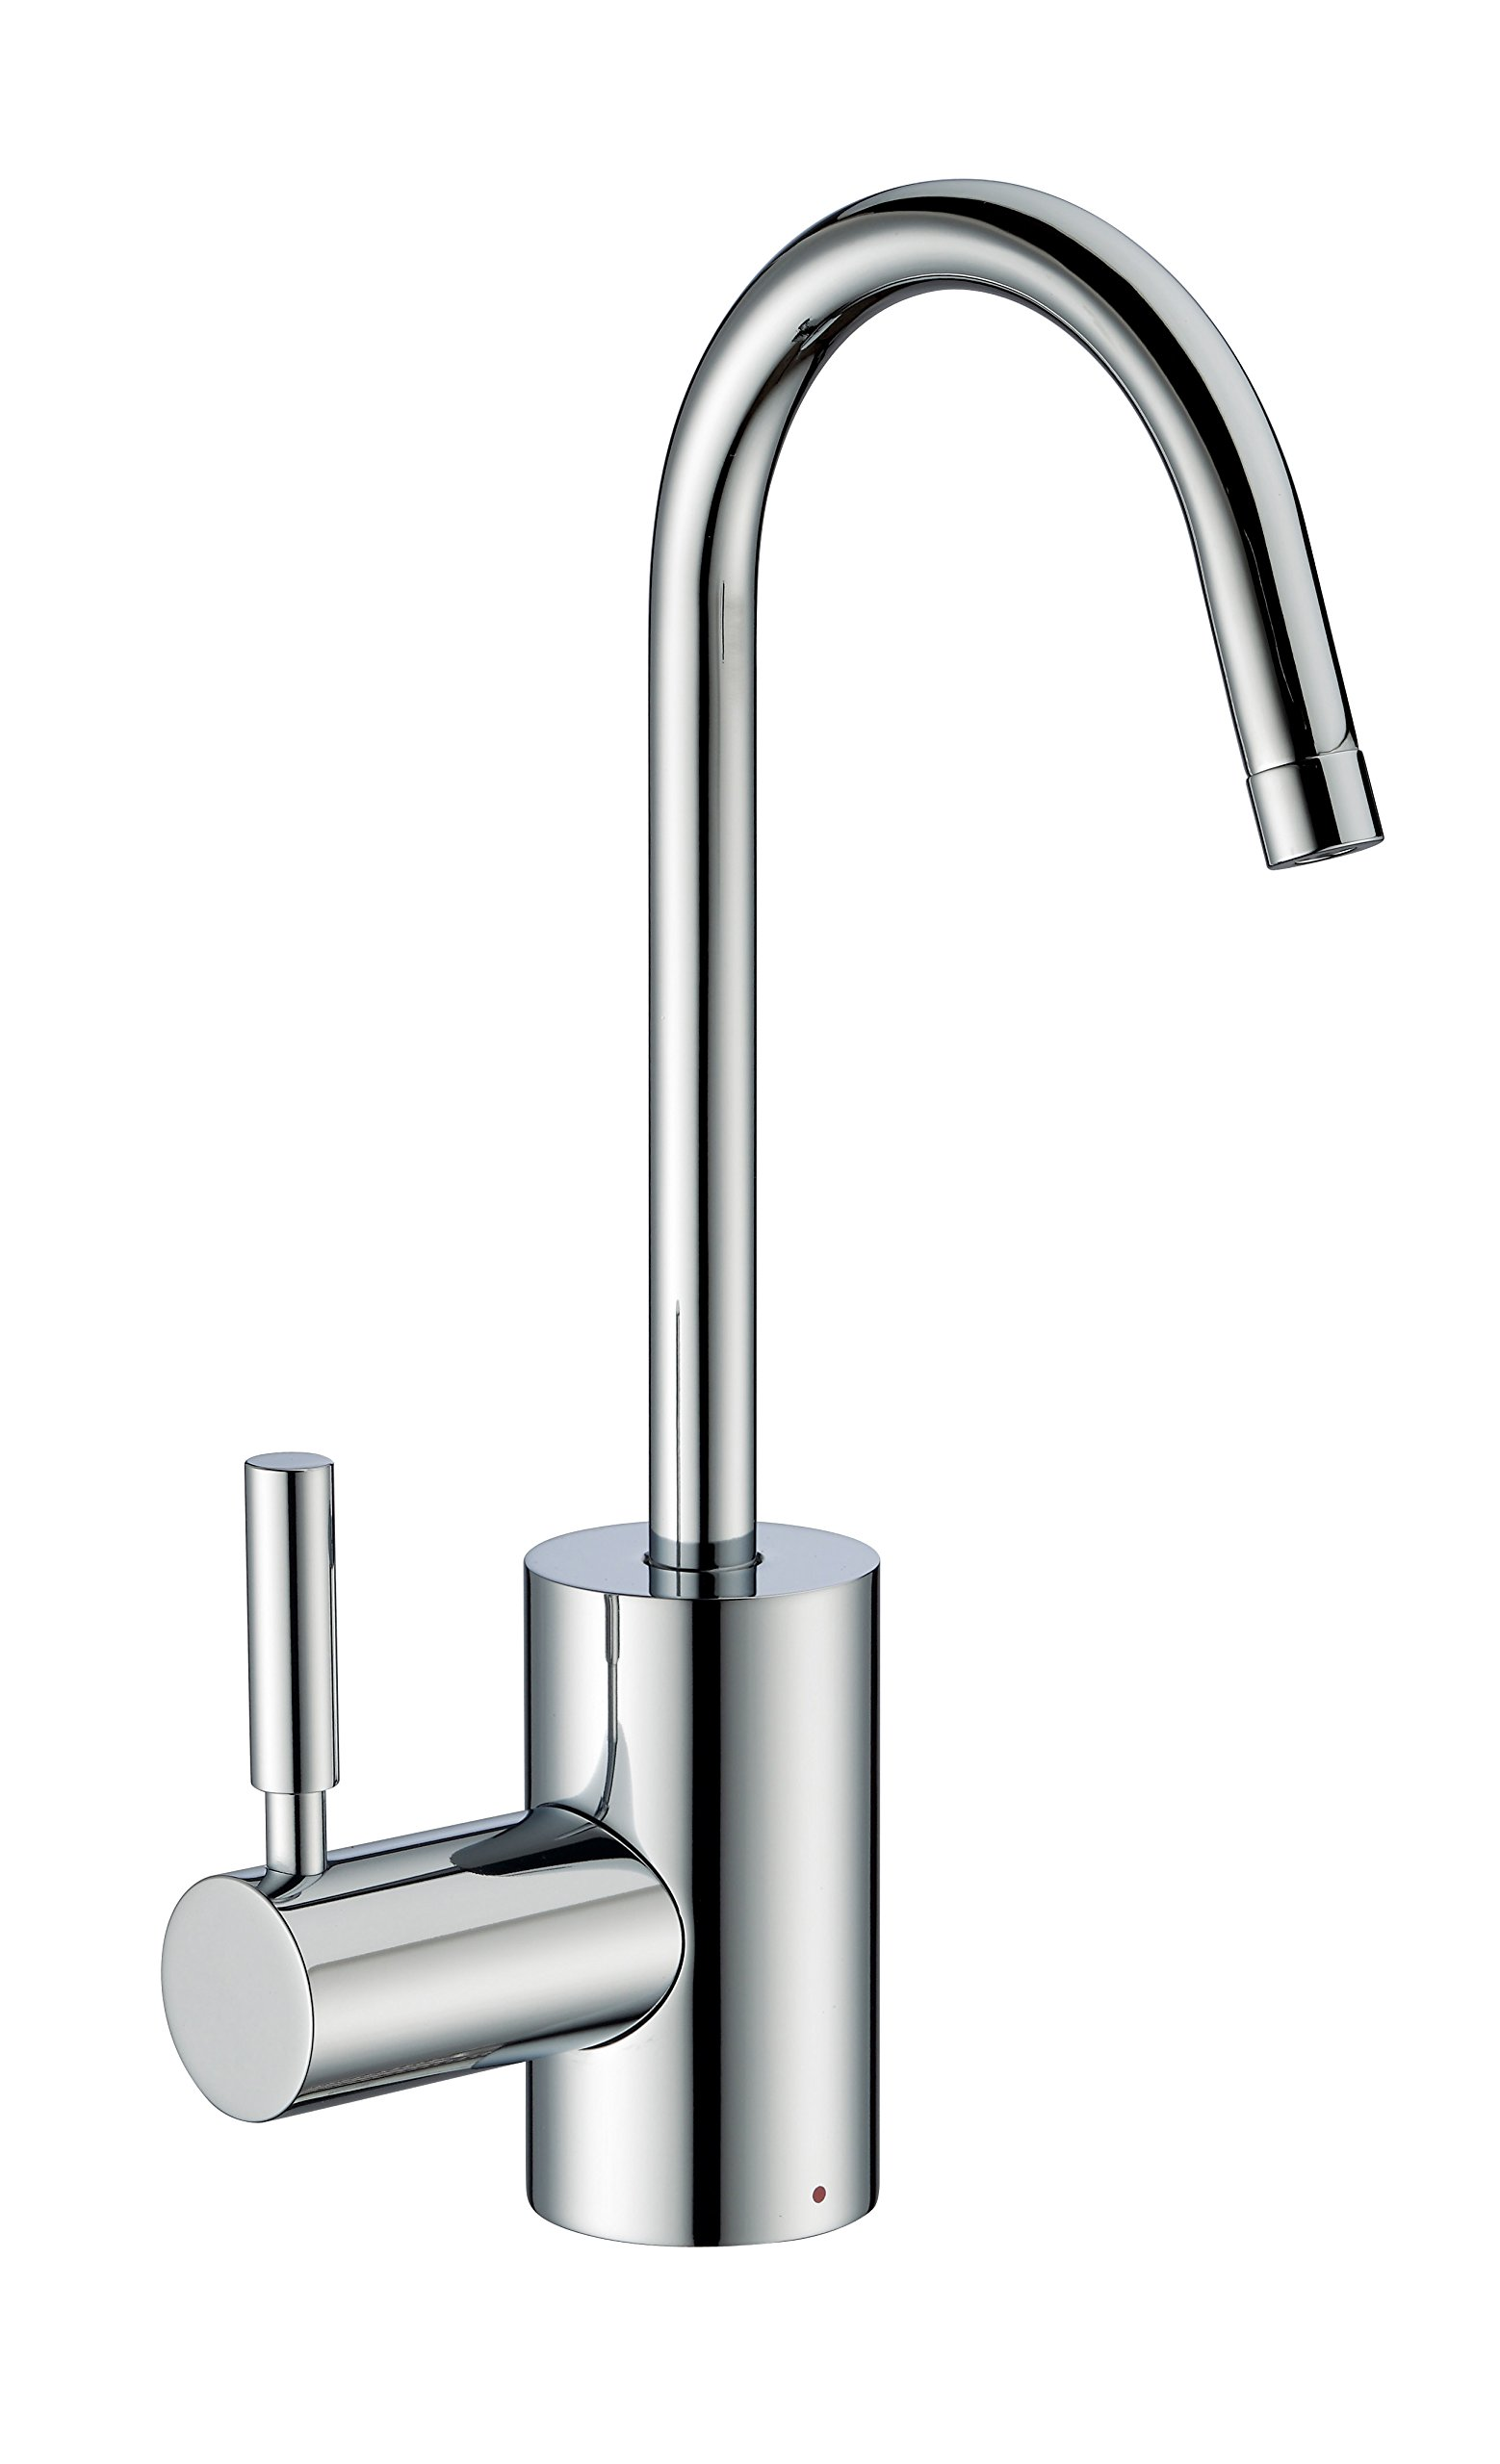 Whitehaus Collection WHFH-H1010-C Forever Point of Use Instant Hot Water Faucet with Contemporary Spout and Self Closing Handle Polished Chrome